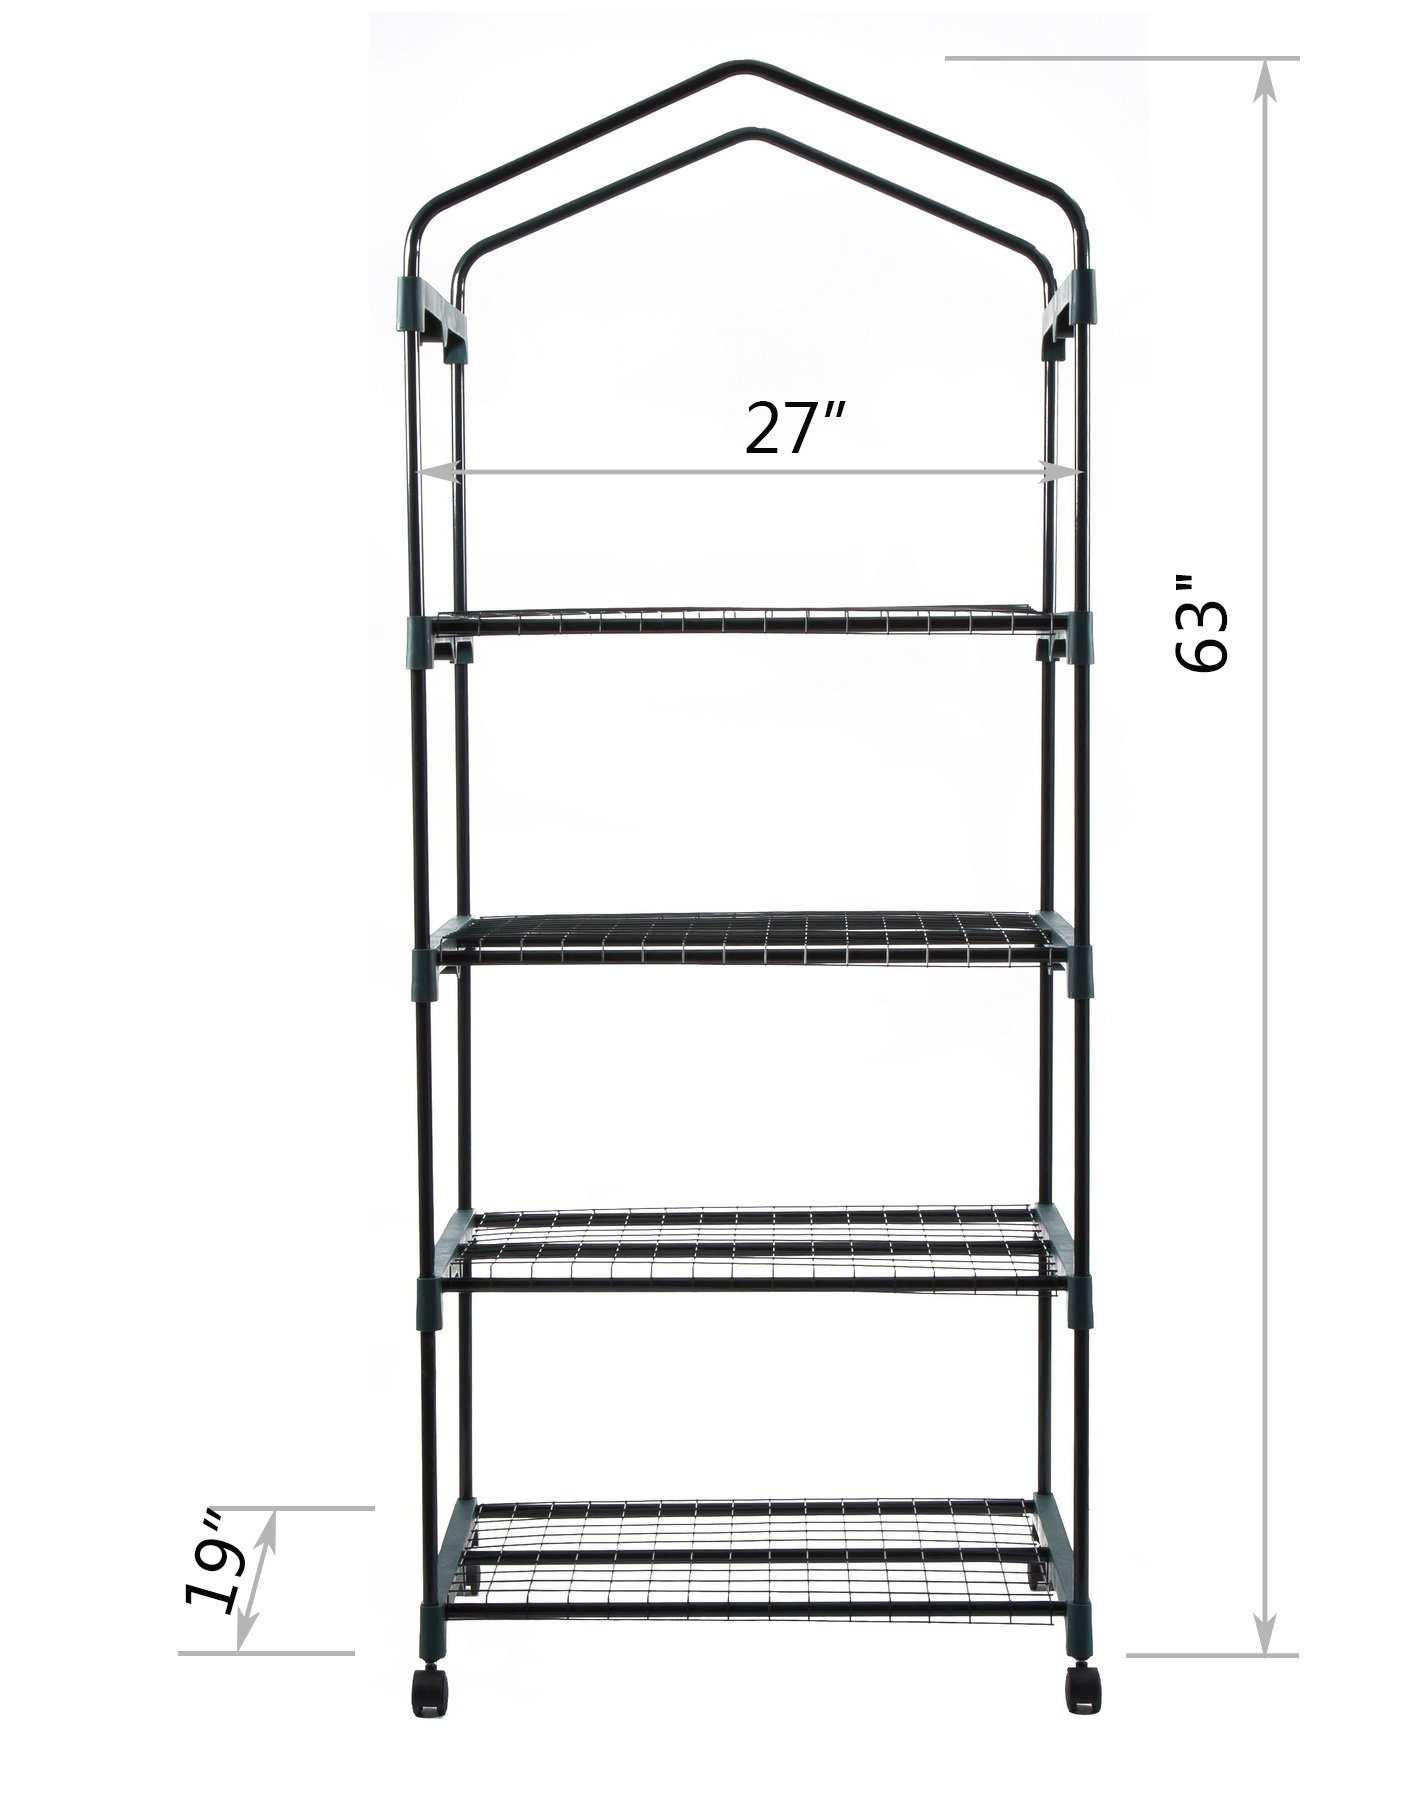 GOJOOASIS 4 Tier Mini Portable Garden Greenhouse on Wheels Plants Shed Hot House for Indoor and Outdoor by GOJOOASIS (Image #3)